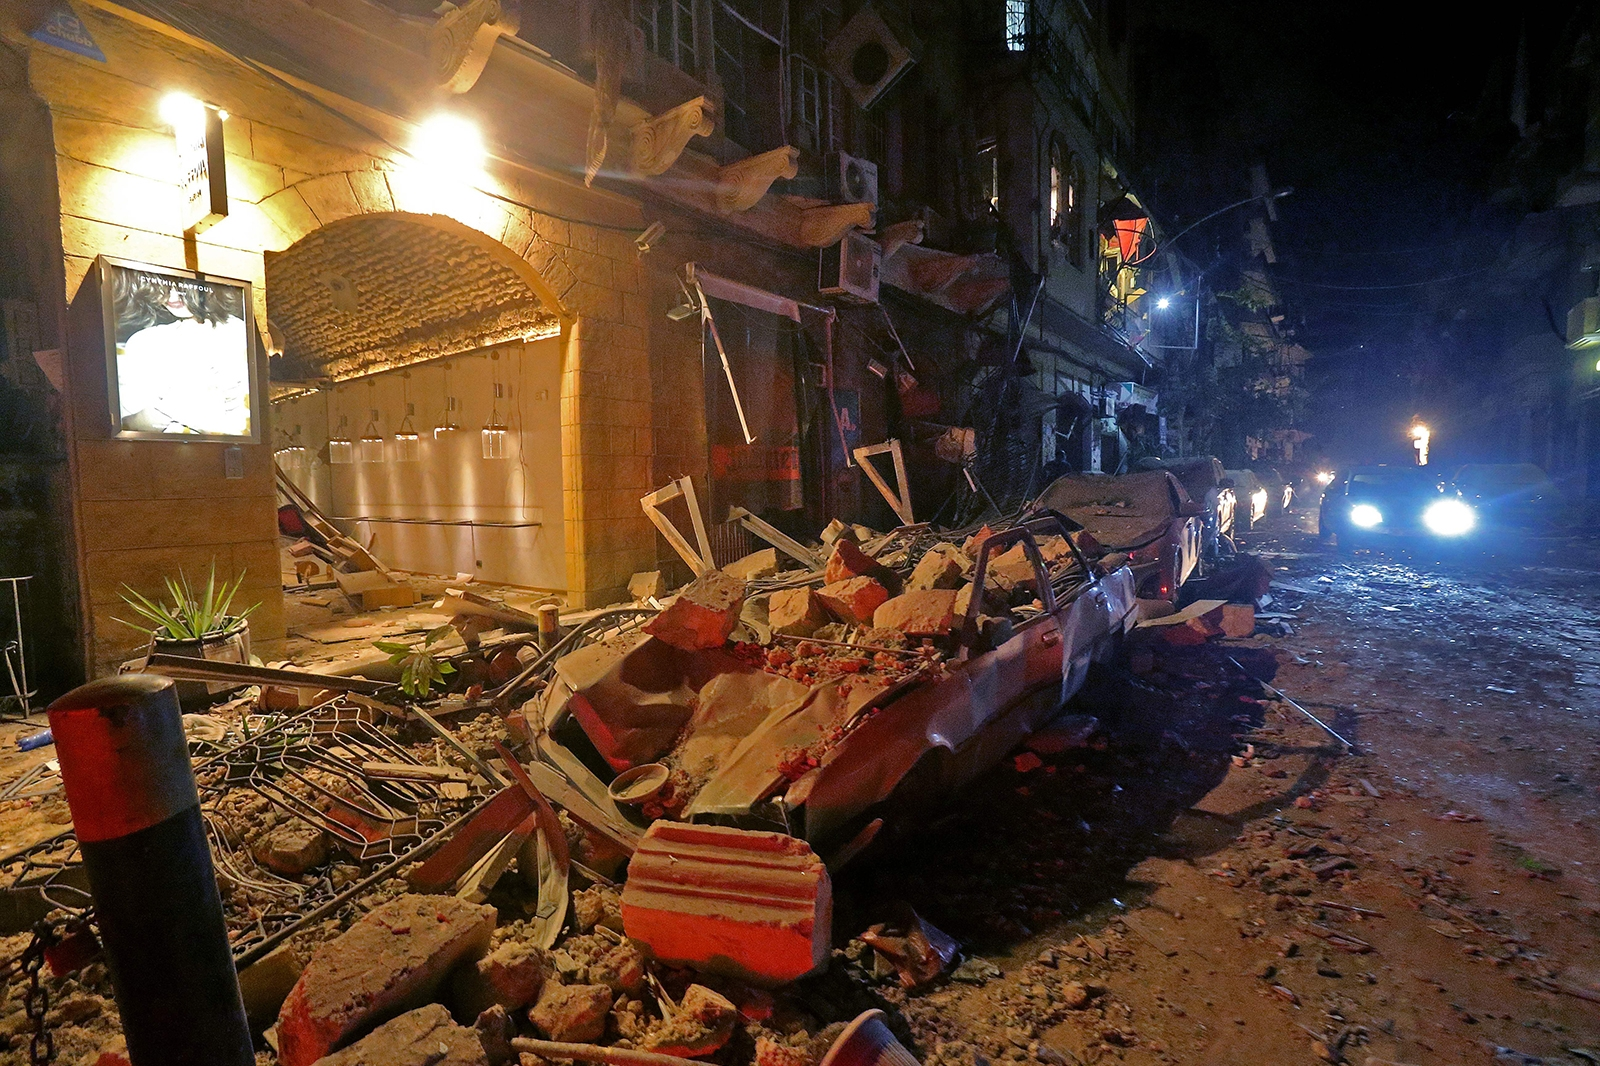 Explosion at ammonium nitrate warehouse in Lebanon: 4,000 injured, nearly 80 died